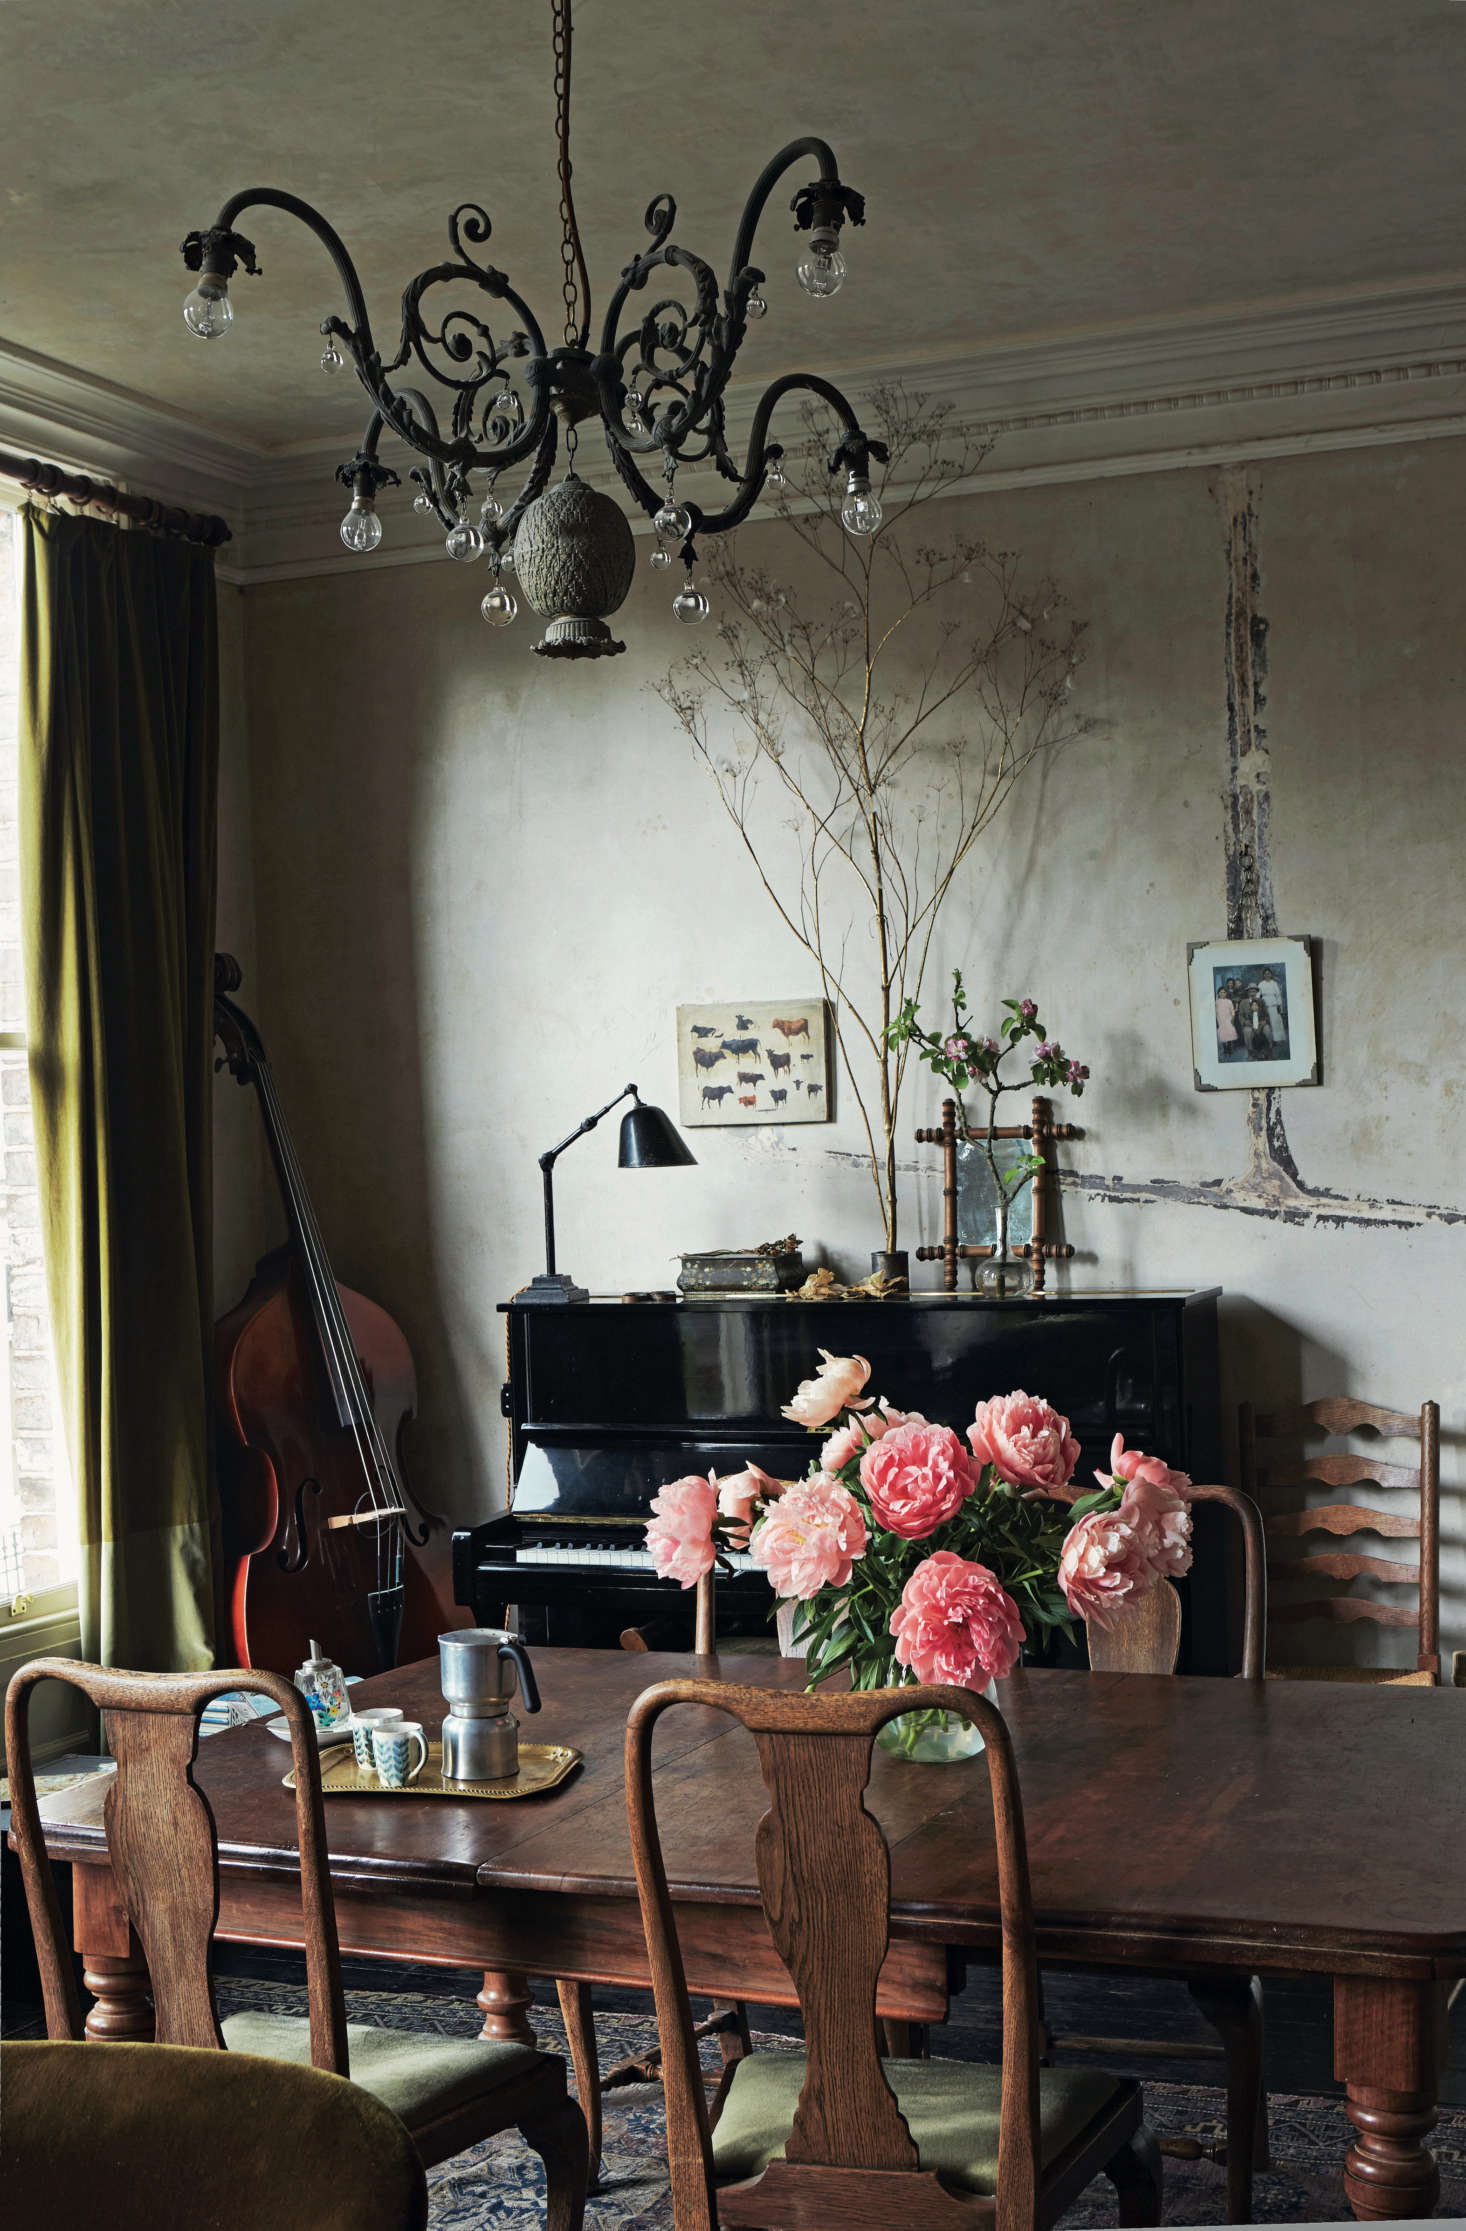 "In Perfect English Townhouse, Ros Byam Shaw notes that the lines of filler on the stripped wall above the piano ""mark out where the pipes for the gas lighting once ran."" She goes on to explain: ""The chandelier is one of David's creations, and incorporates a metal pineapple found at a car boot/yard sale. The painting of cows on the far wall is a study by David's great-grandfather, the celebrated Swiss artist Eugène Burnand."""